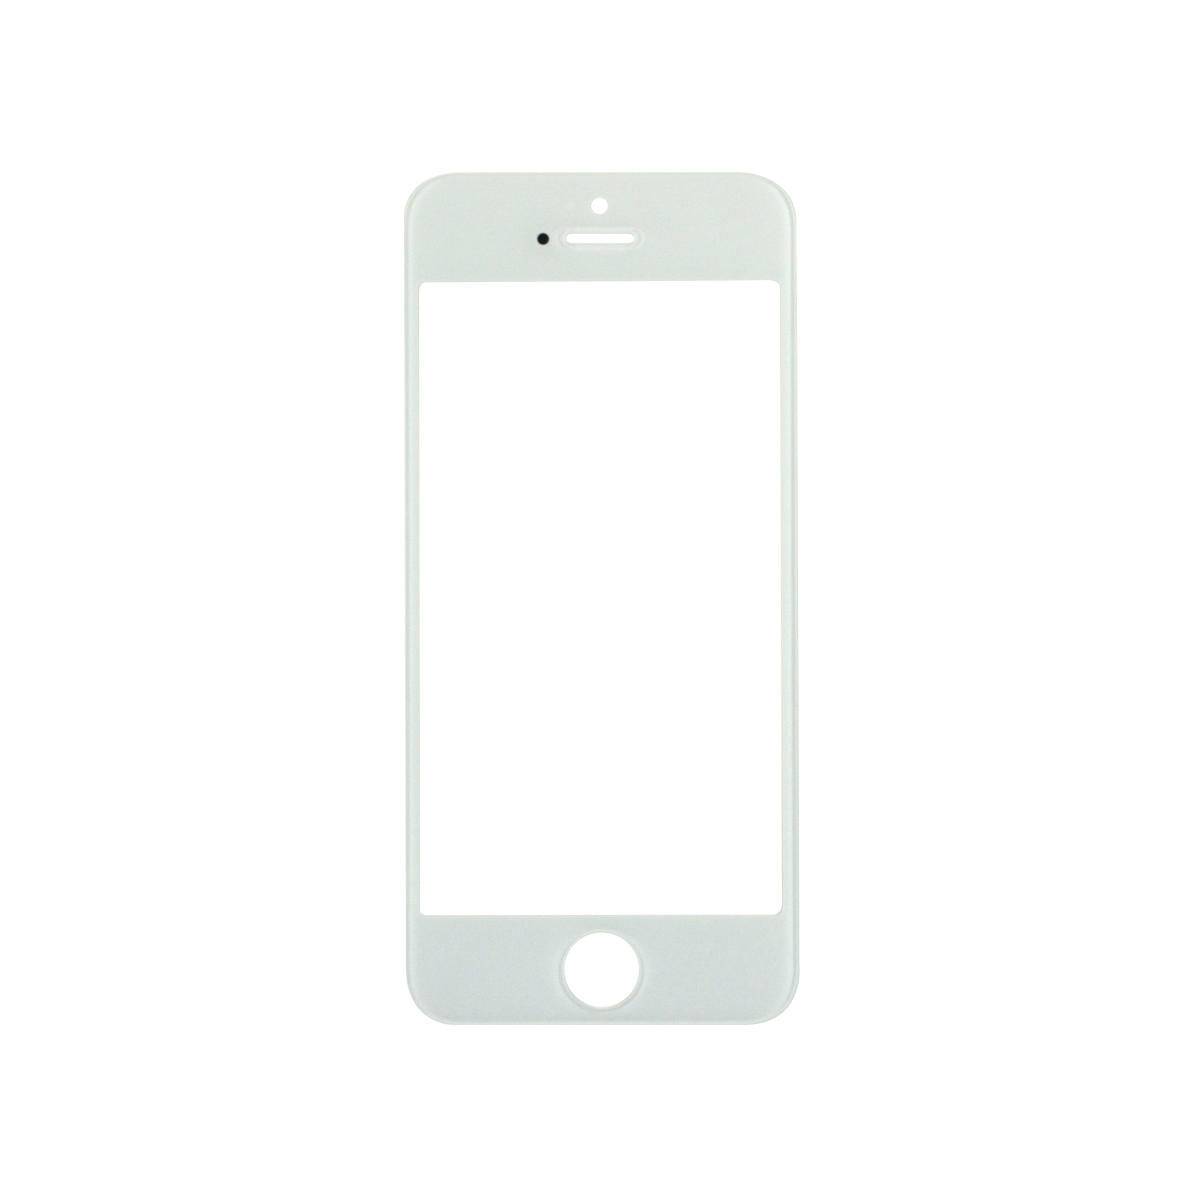 Iphone 5 white png. C s glass lens